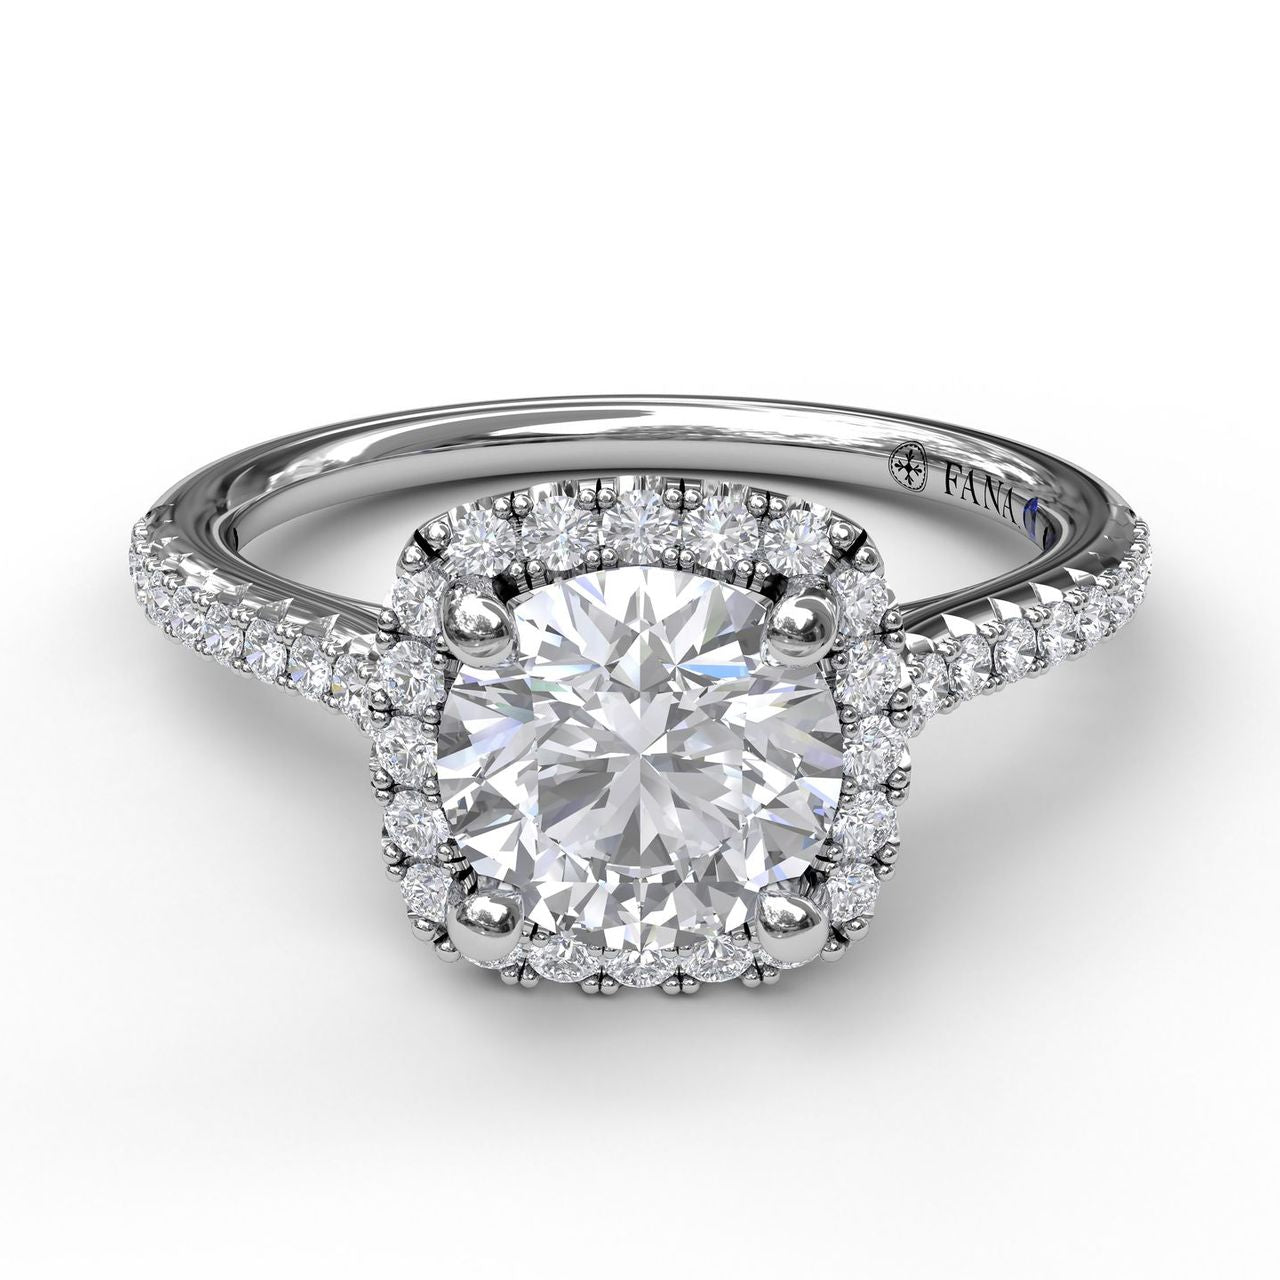 FANA 14k White Gold Halo Engagement Ring